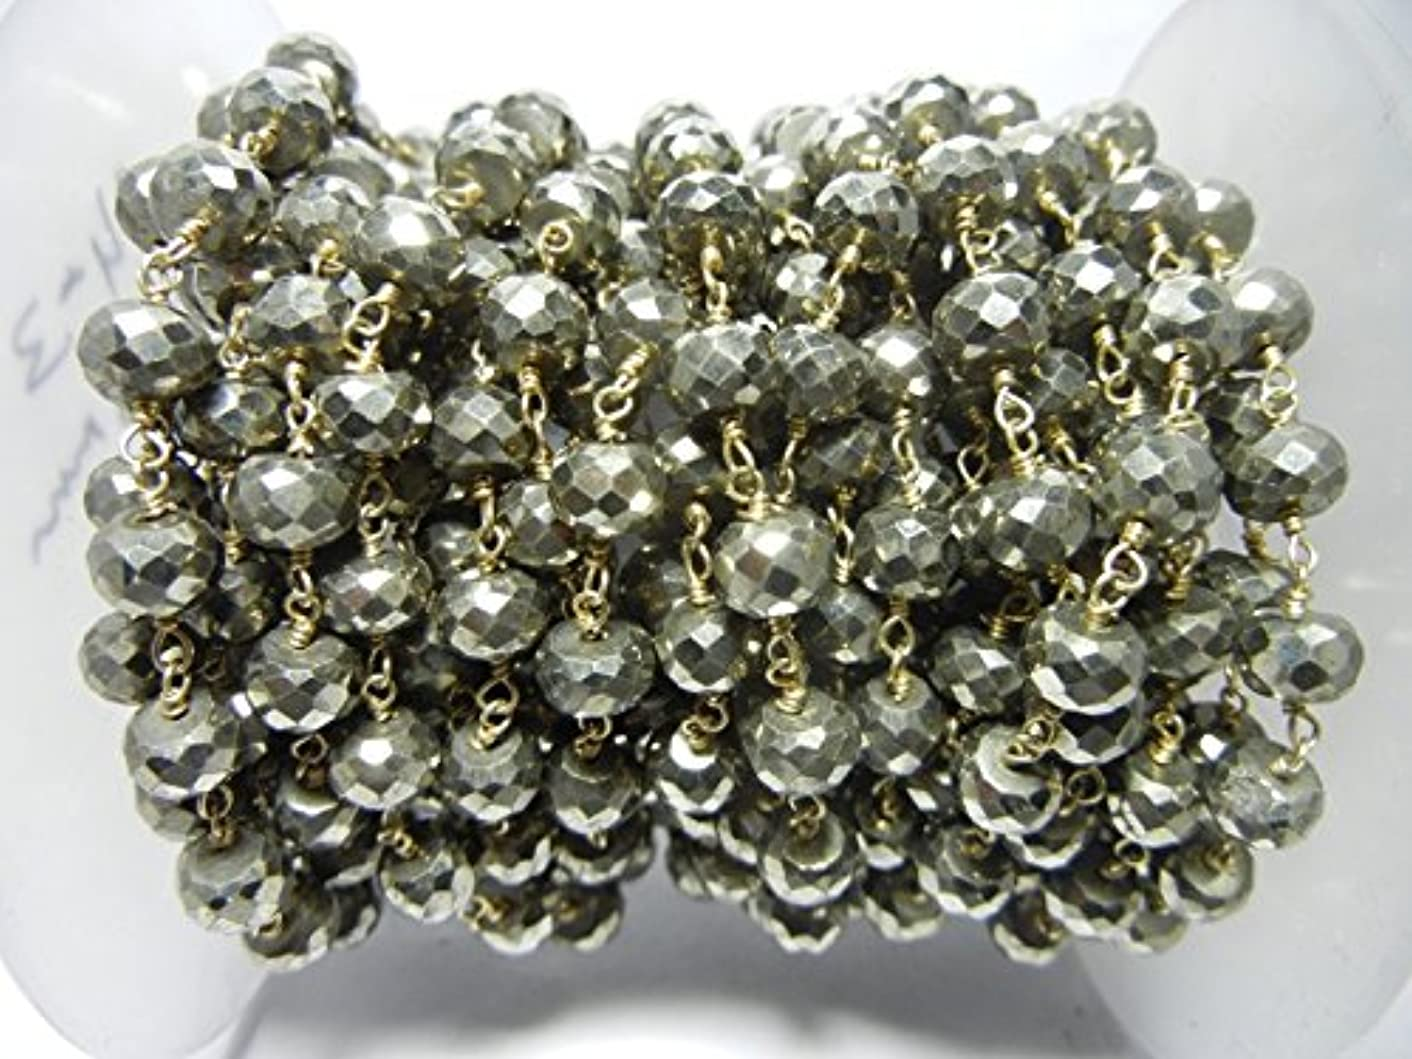 3 feet Natural Pyrite Bead 6mm 24k Gold Plated Rosary Style Chain by bestinbeads, Natural semi Precious Gemstone Beaded Chain by The Foot, Jewelry Making Chain